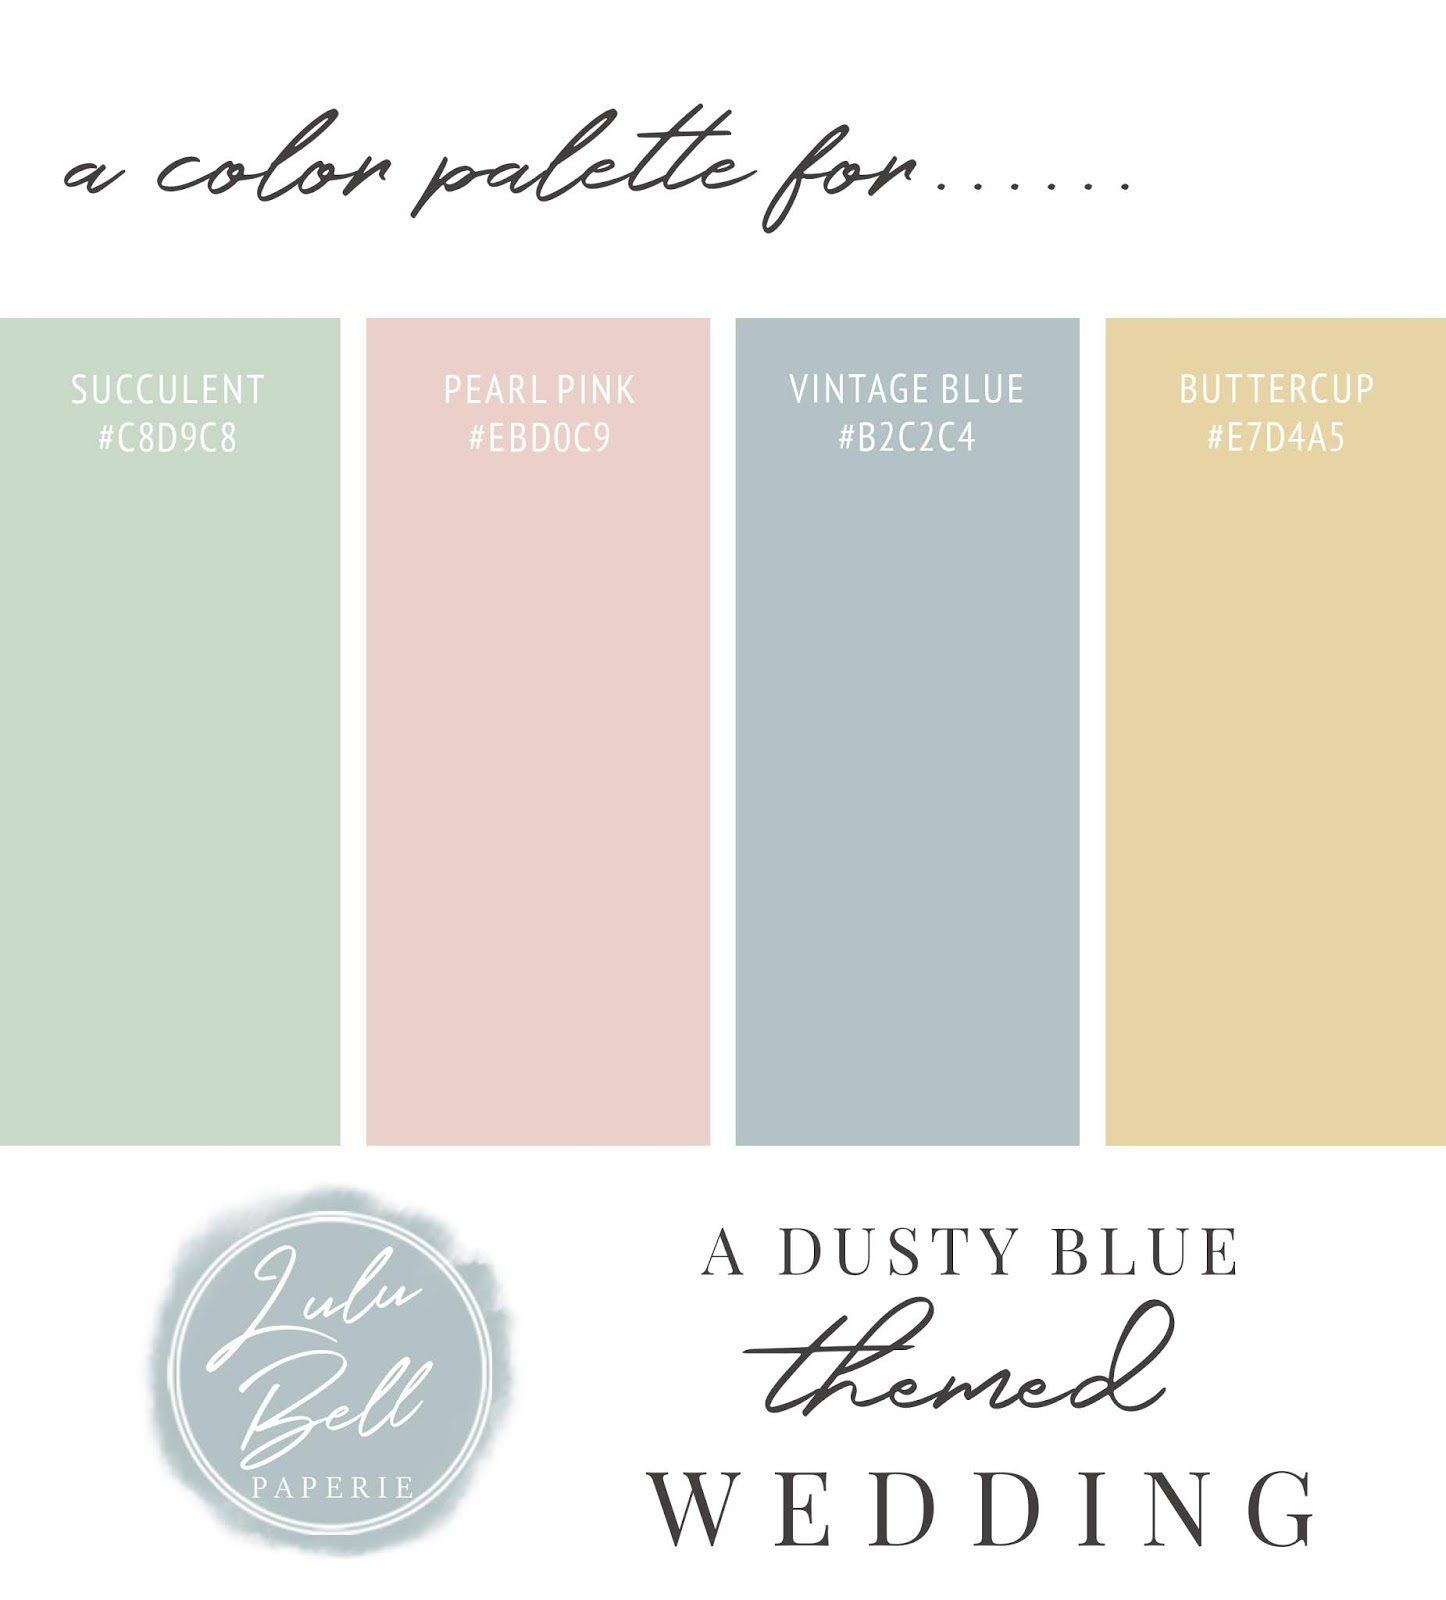 Dusty Blue Pink and Green Wedding Color Palette Swatch Card : Succulent, Pearl Pink, Vintage Blue, and Buttercup Yellow